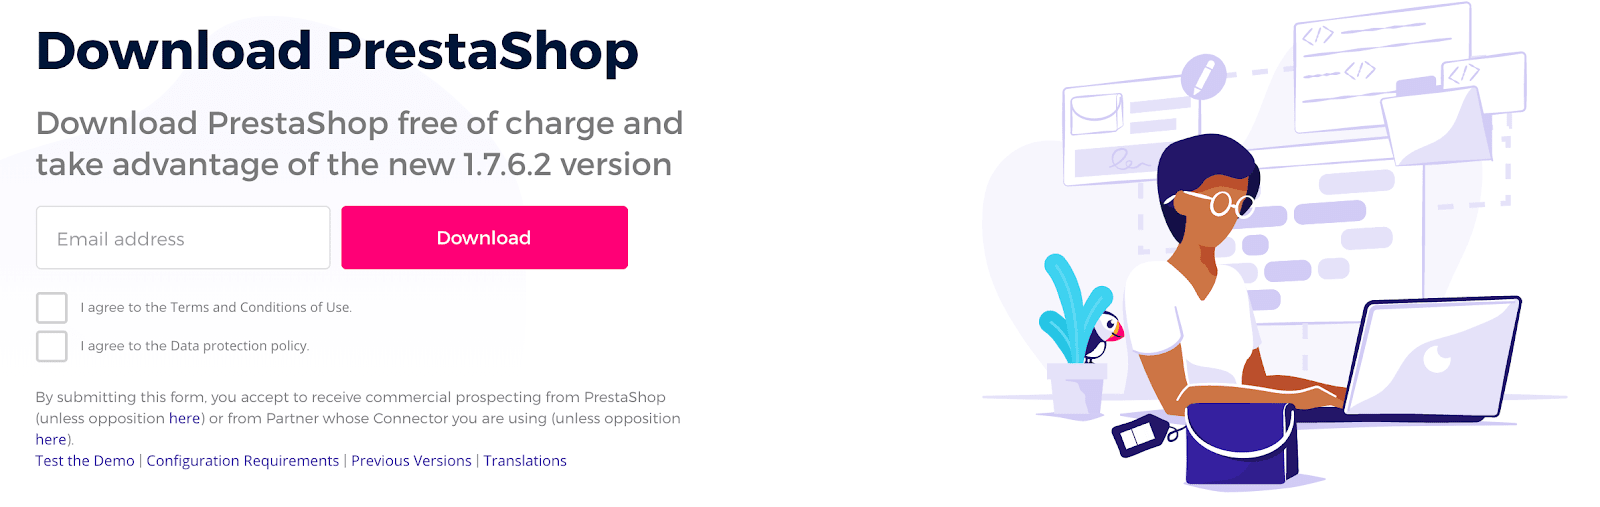 PrestaShop Pricing